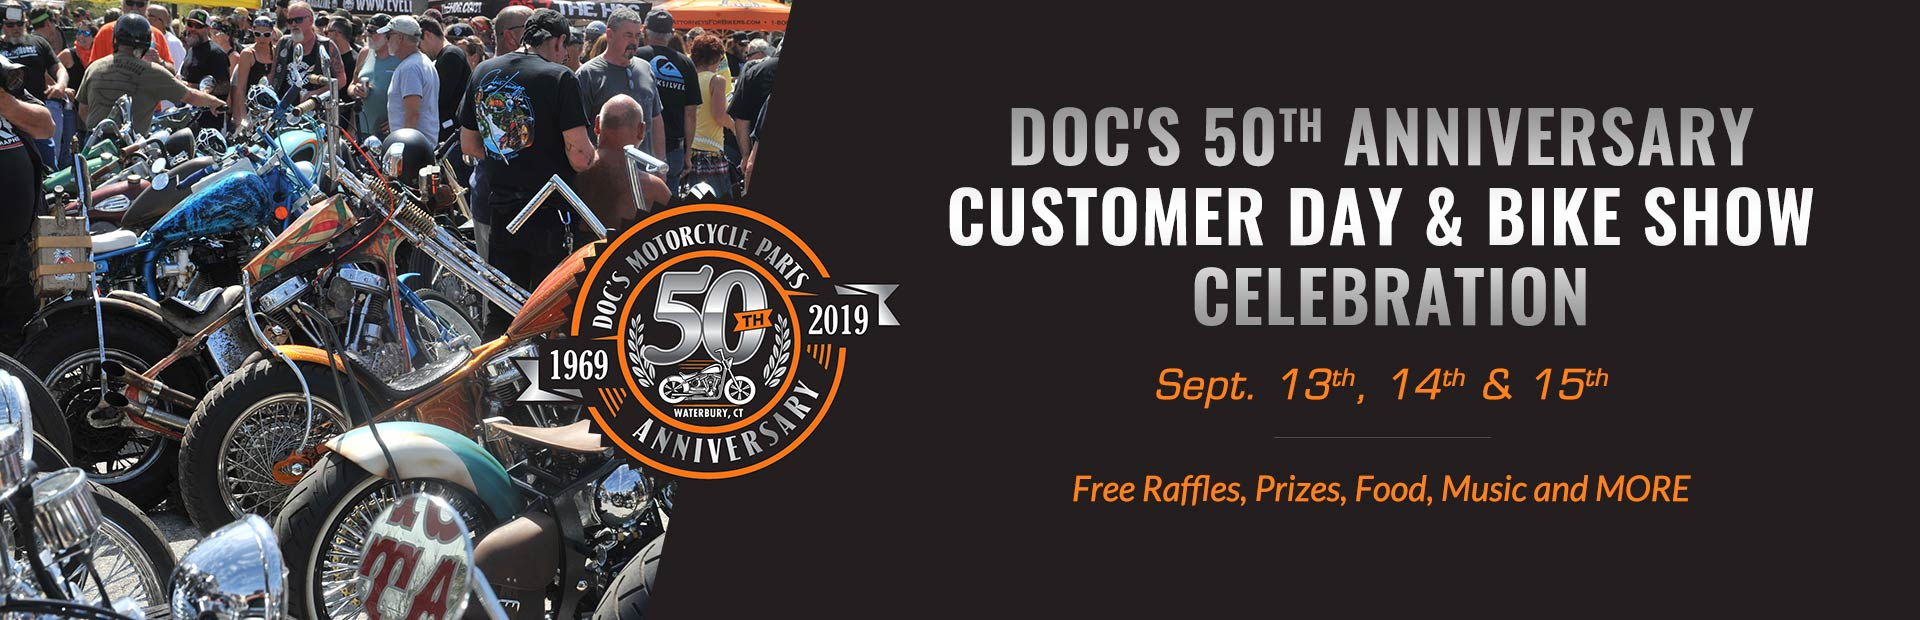 Doc's 50th Anniversary Customer Day & Bike Show Celebration. Free Raffles, Prizes, Food, Music and M